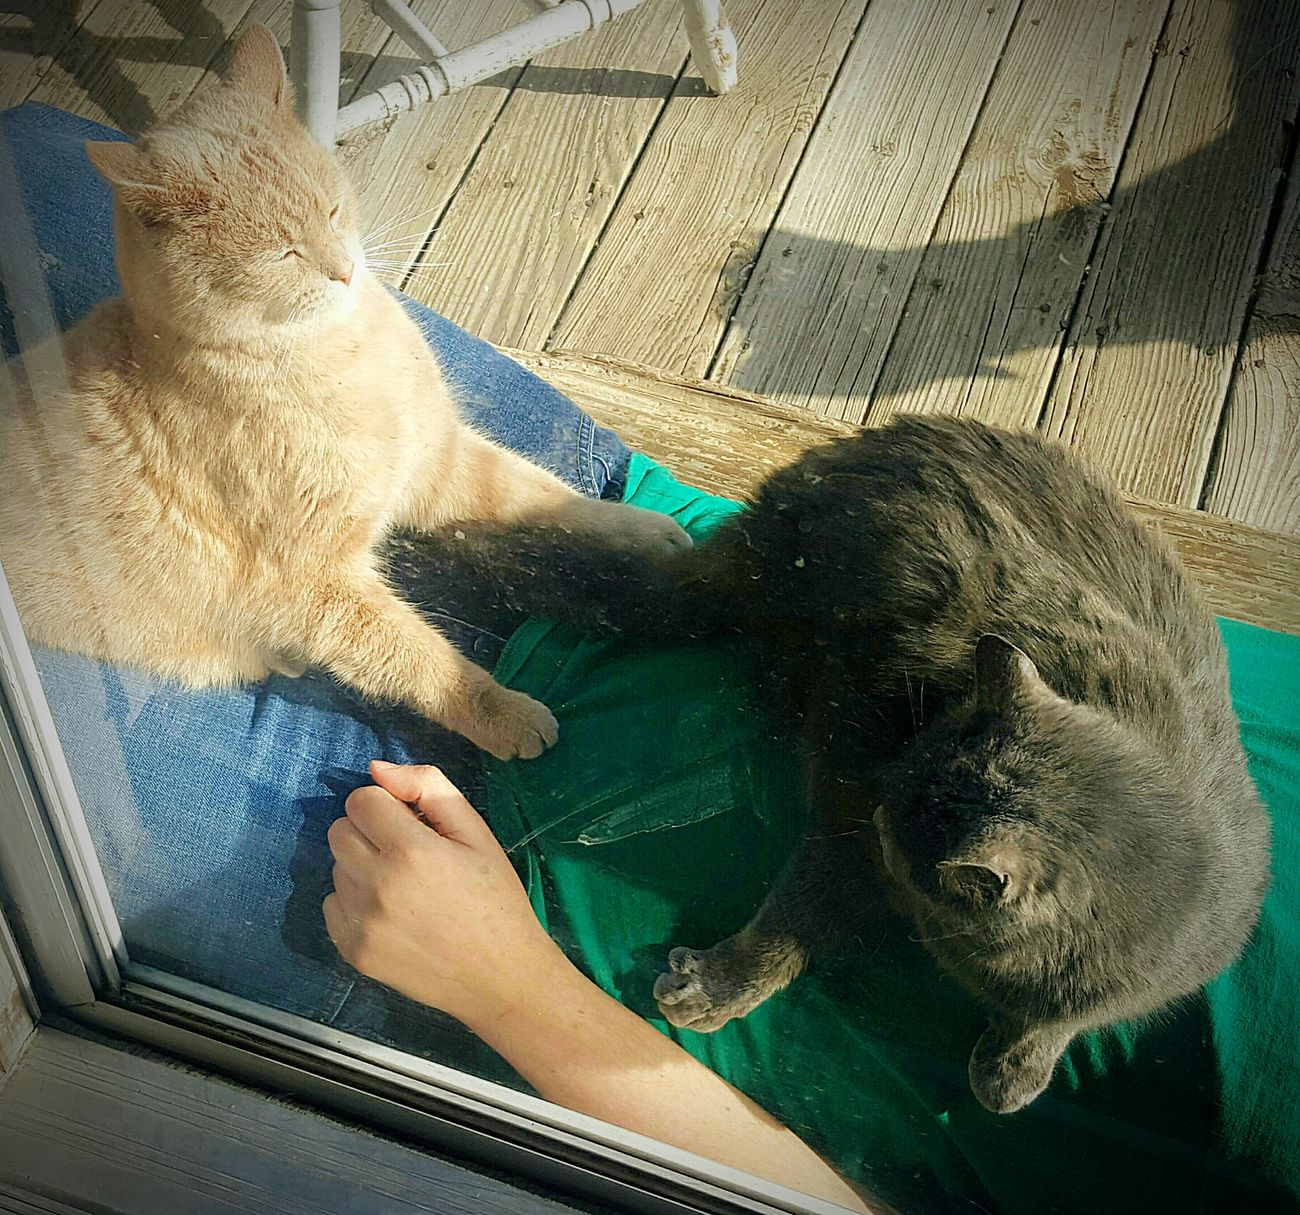 -Jackie & Jazzman- Cats 🐱 My Cats Cat♡ Through The Window Fighting Bitchplease Cool Cats  Mortal Enemies? Capturing The Moment Life In Motion Samsung Galaxy S6 Edge Cellphone Photography Sunbathing ❤ My Son!! Homesweethome On The Porch Front Or Back Yard